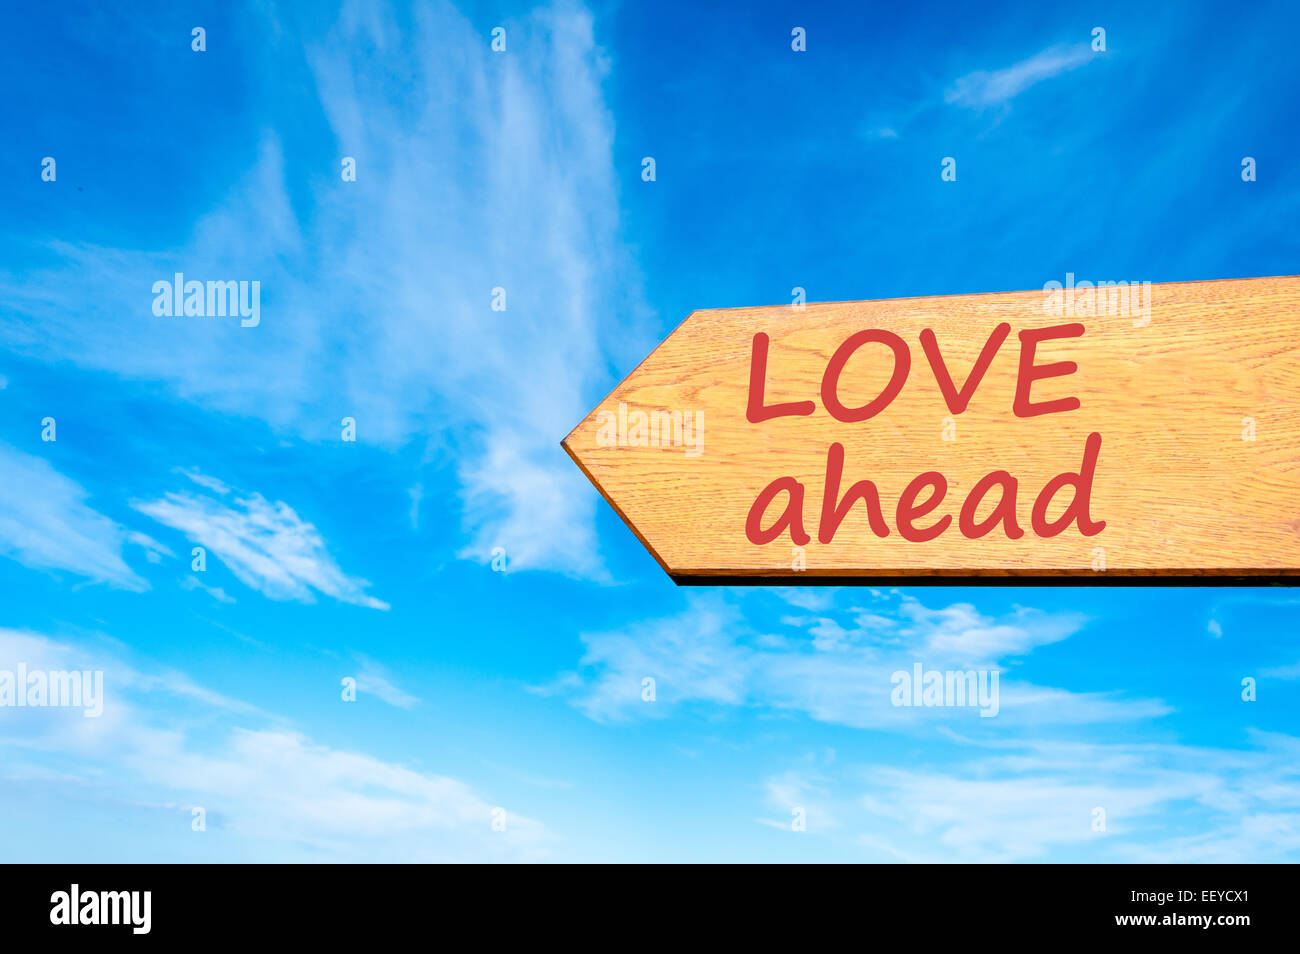 Wood arrow sign against clear blue sky with Love ahead message, Emotion and feelings concept - Stock Image